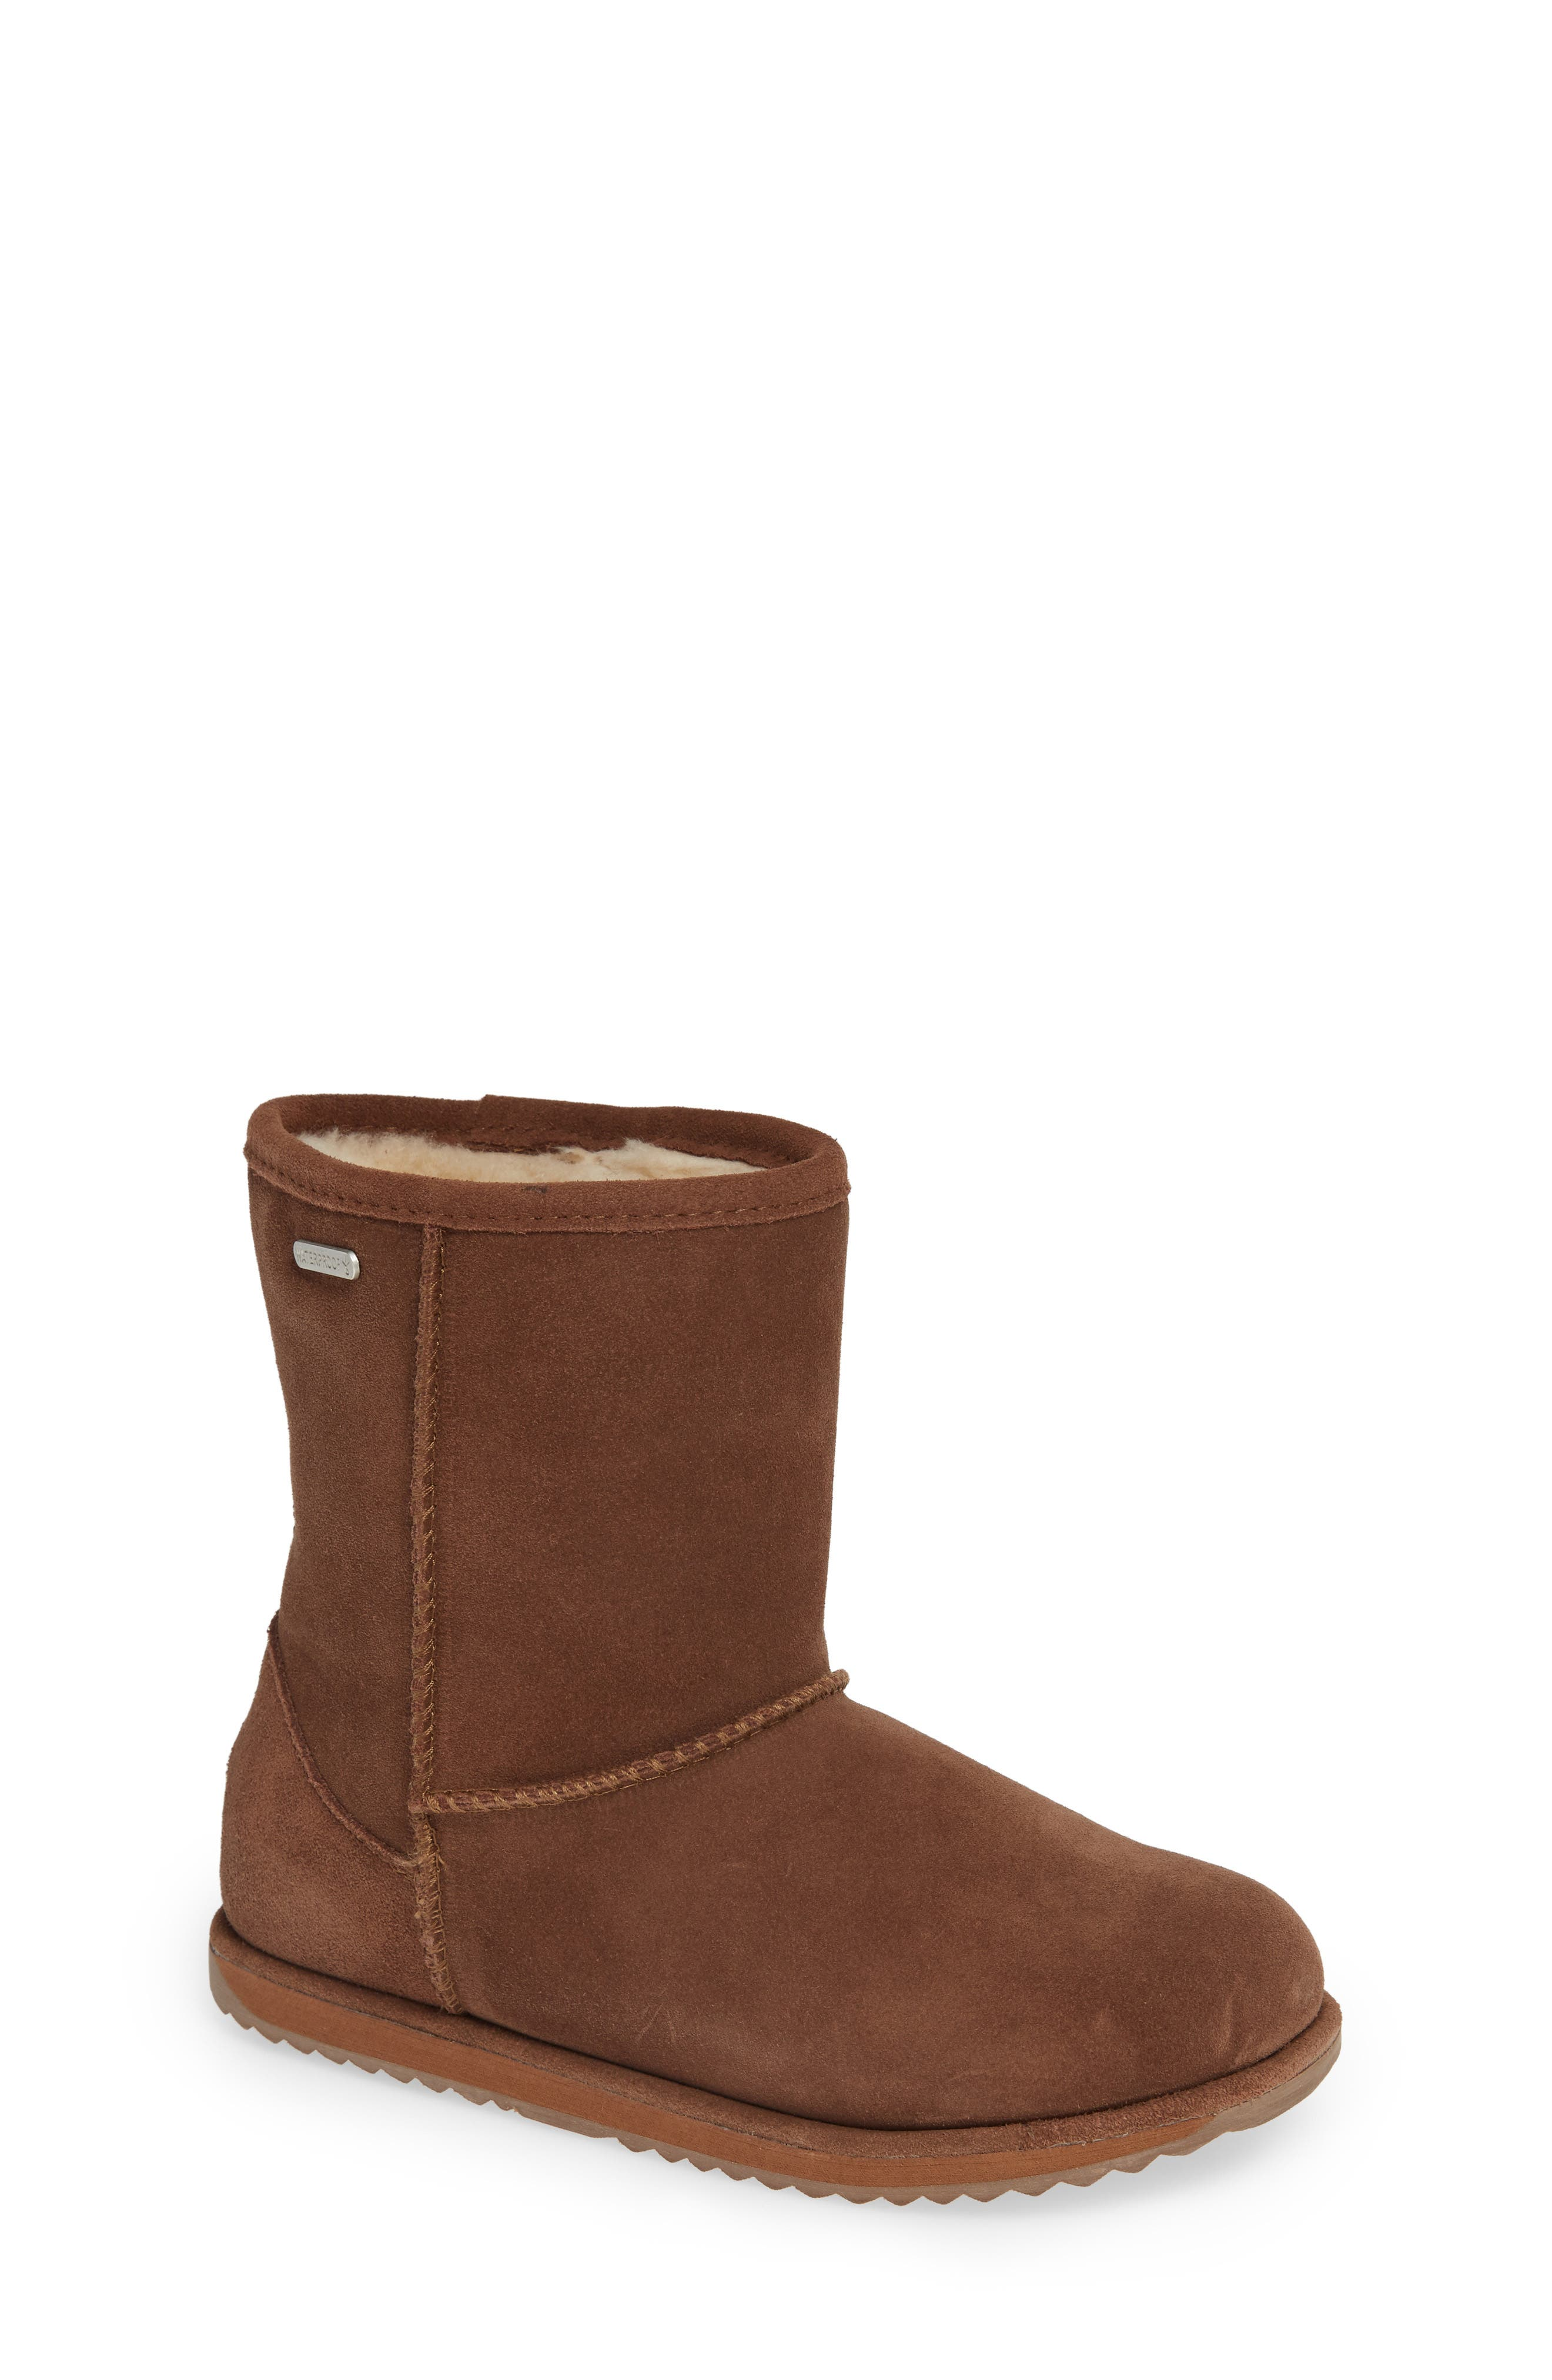 Brumby Waterproof Boot,                         Main,                         color, OAK BROWN